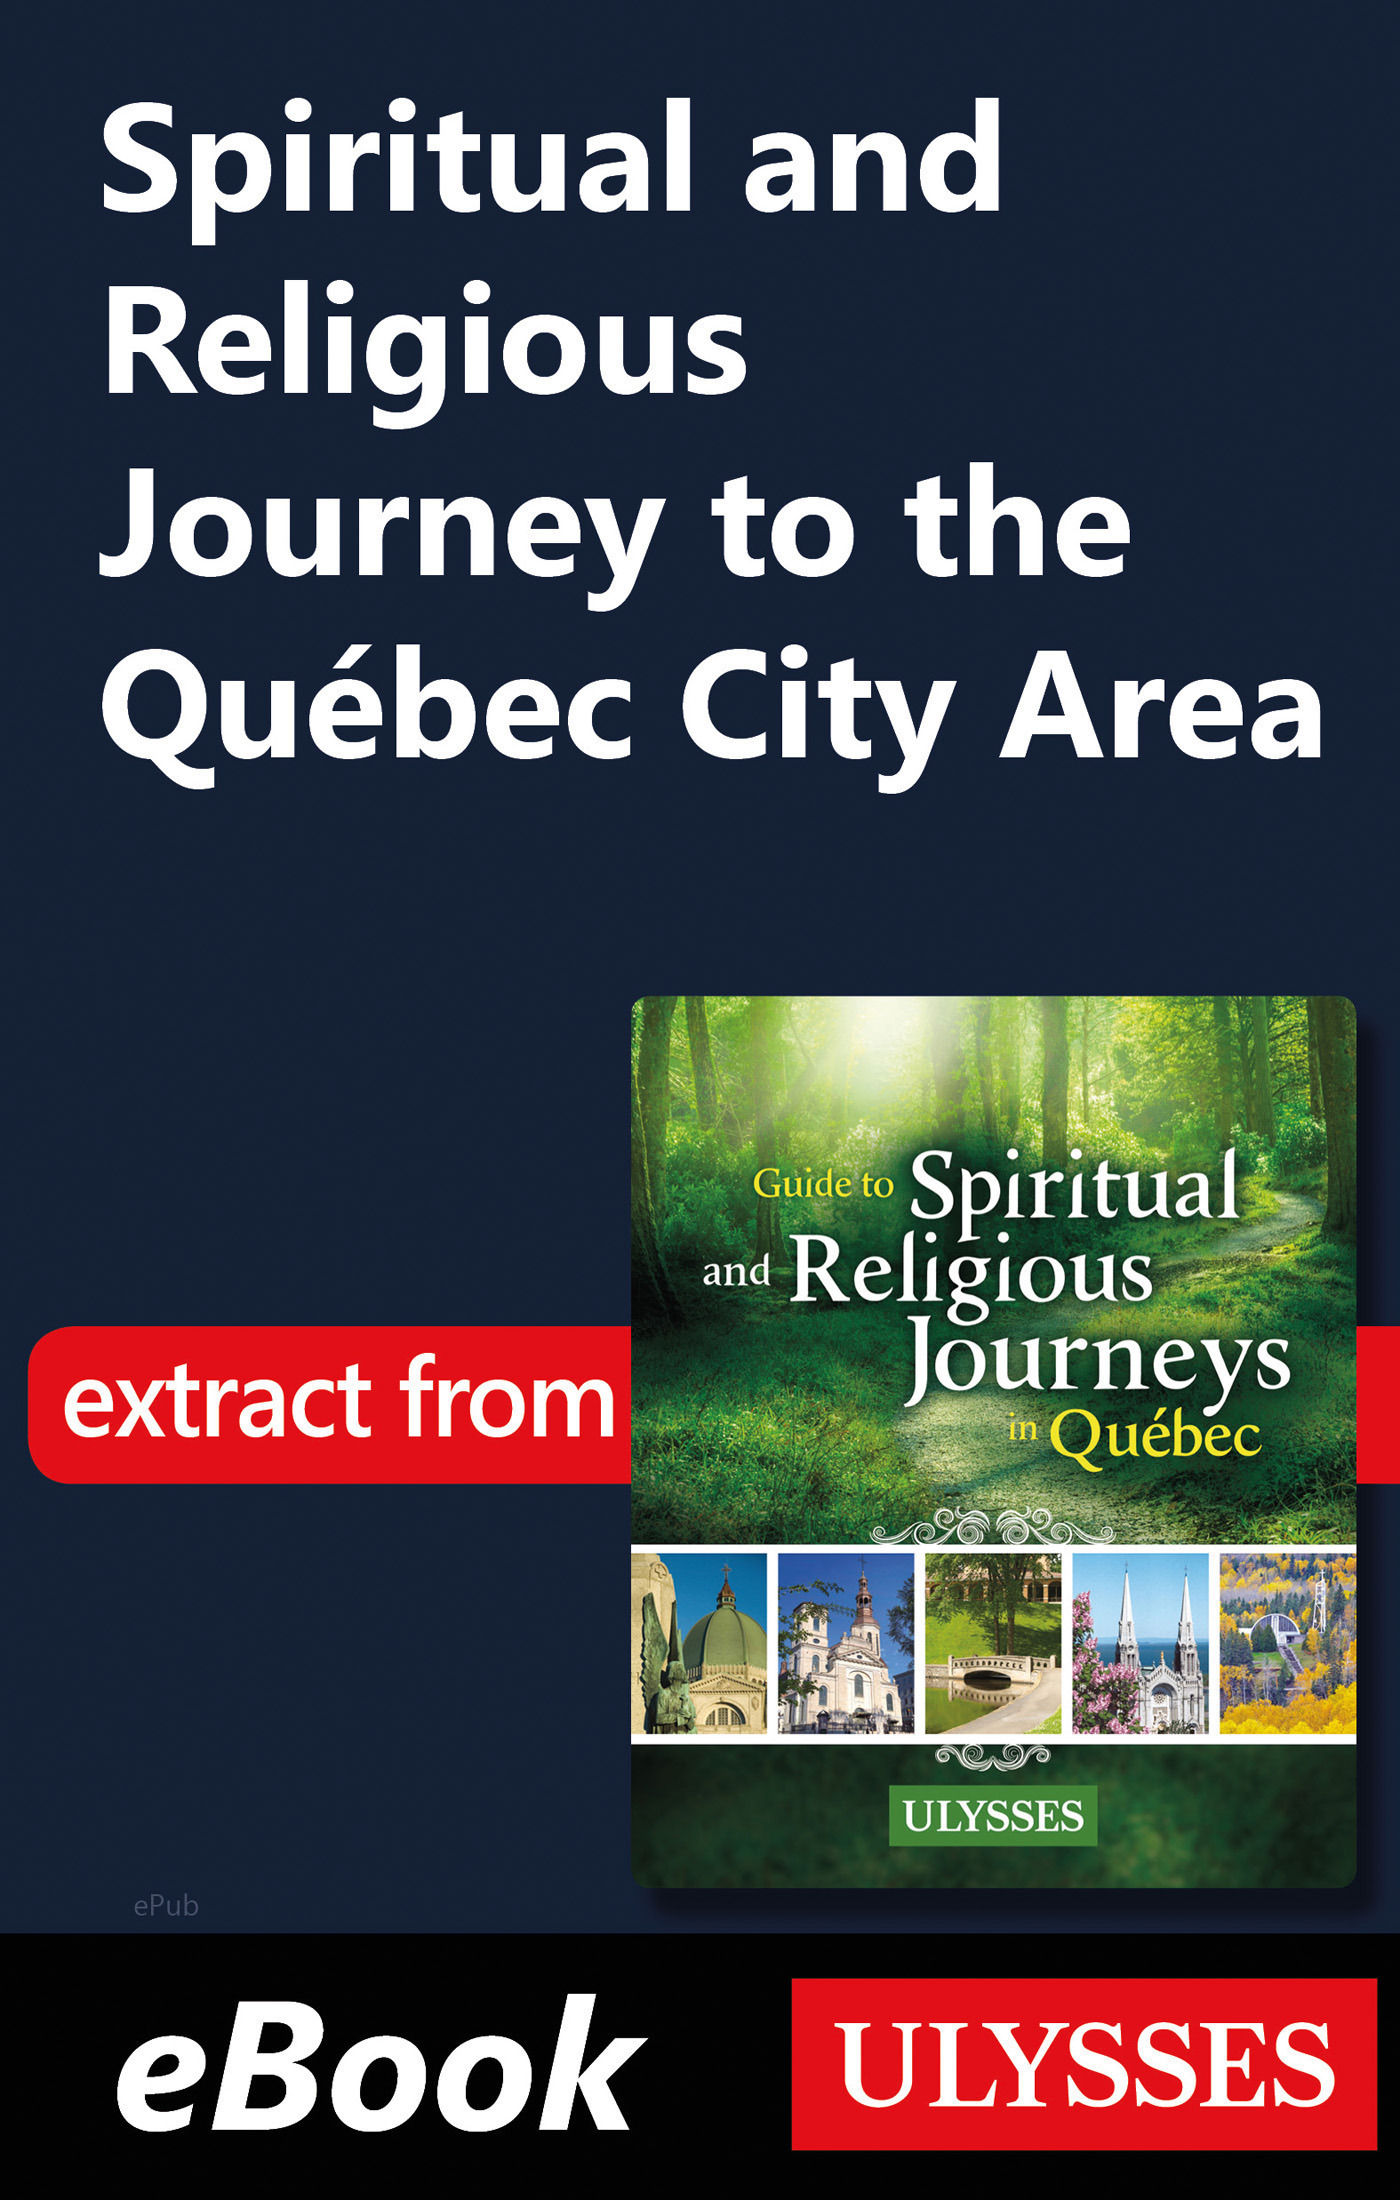 Spiritual and Religious Journey to the Québec City Area (ebook)